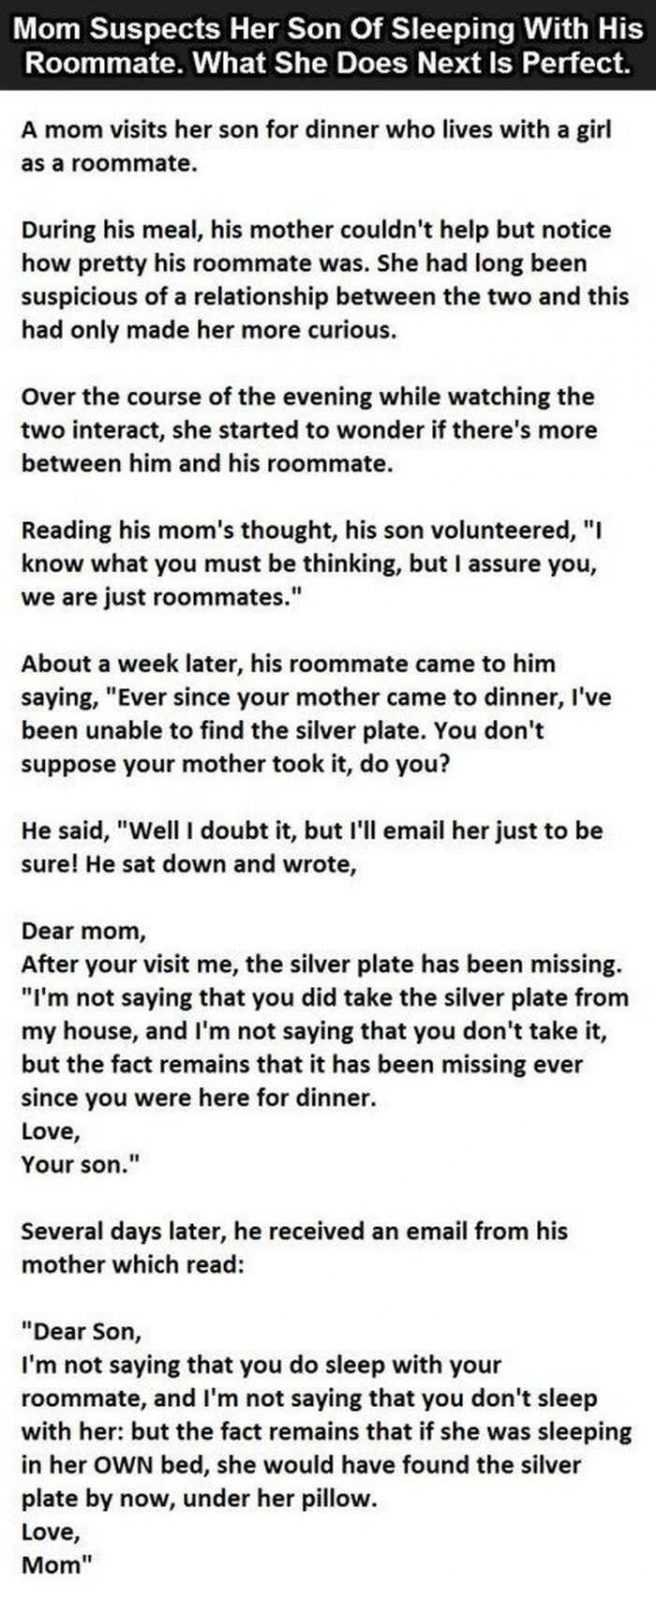 Funny Short Story Jokes : funny, short, story, jokes, Really, Funny, Short, Stories, Because, Laugh